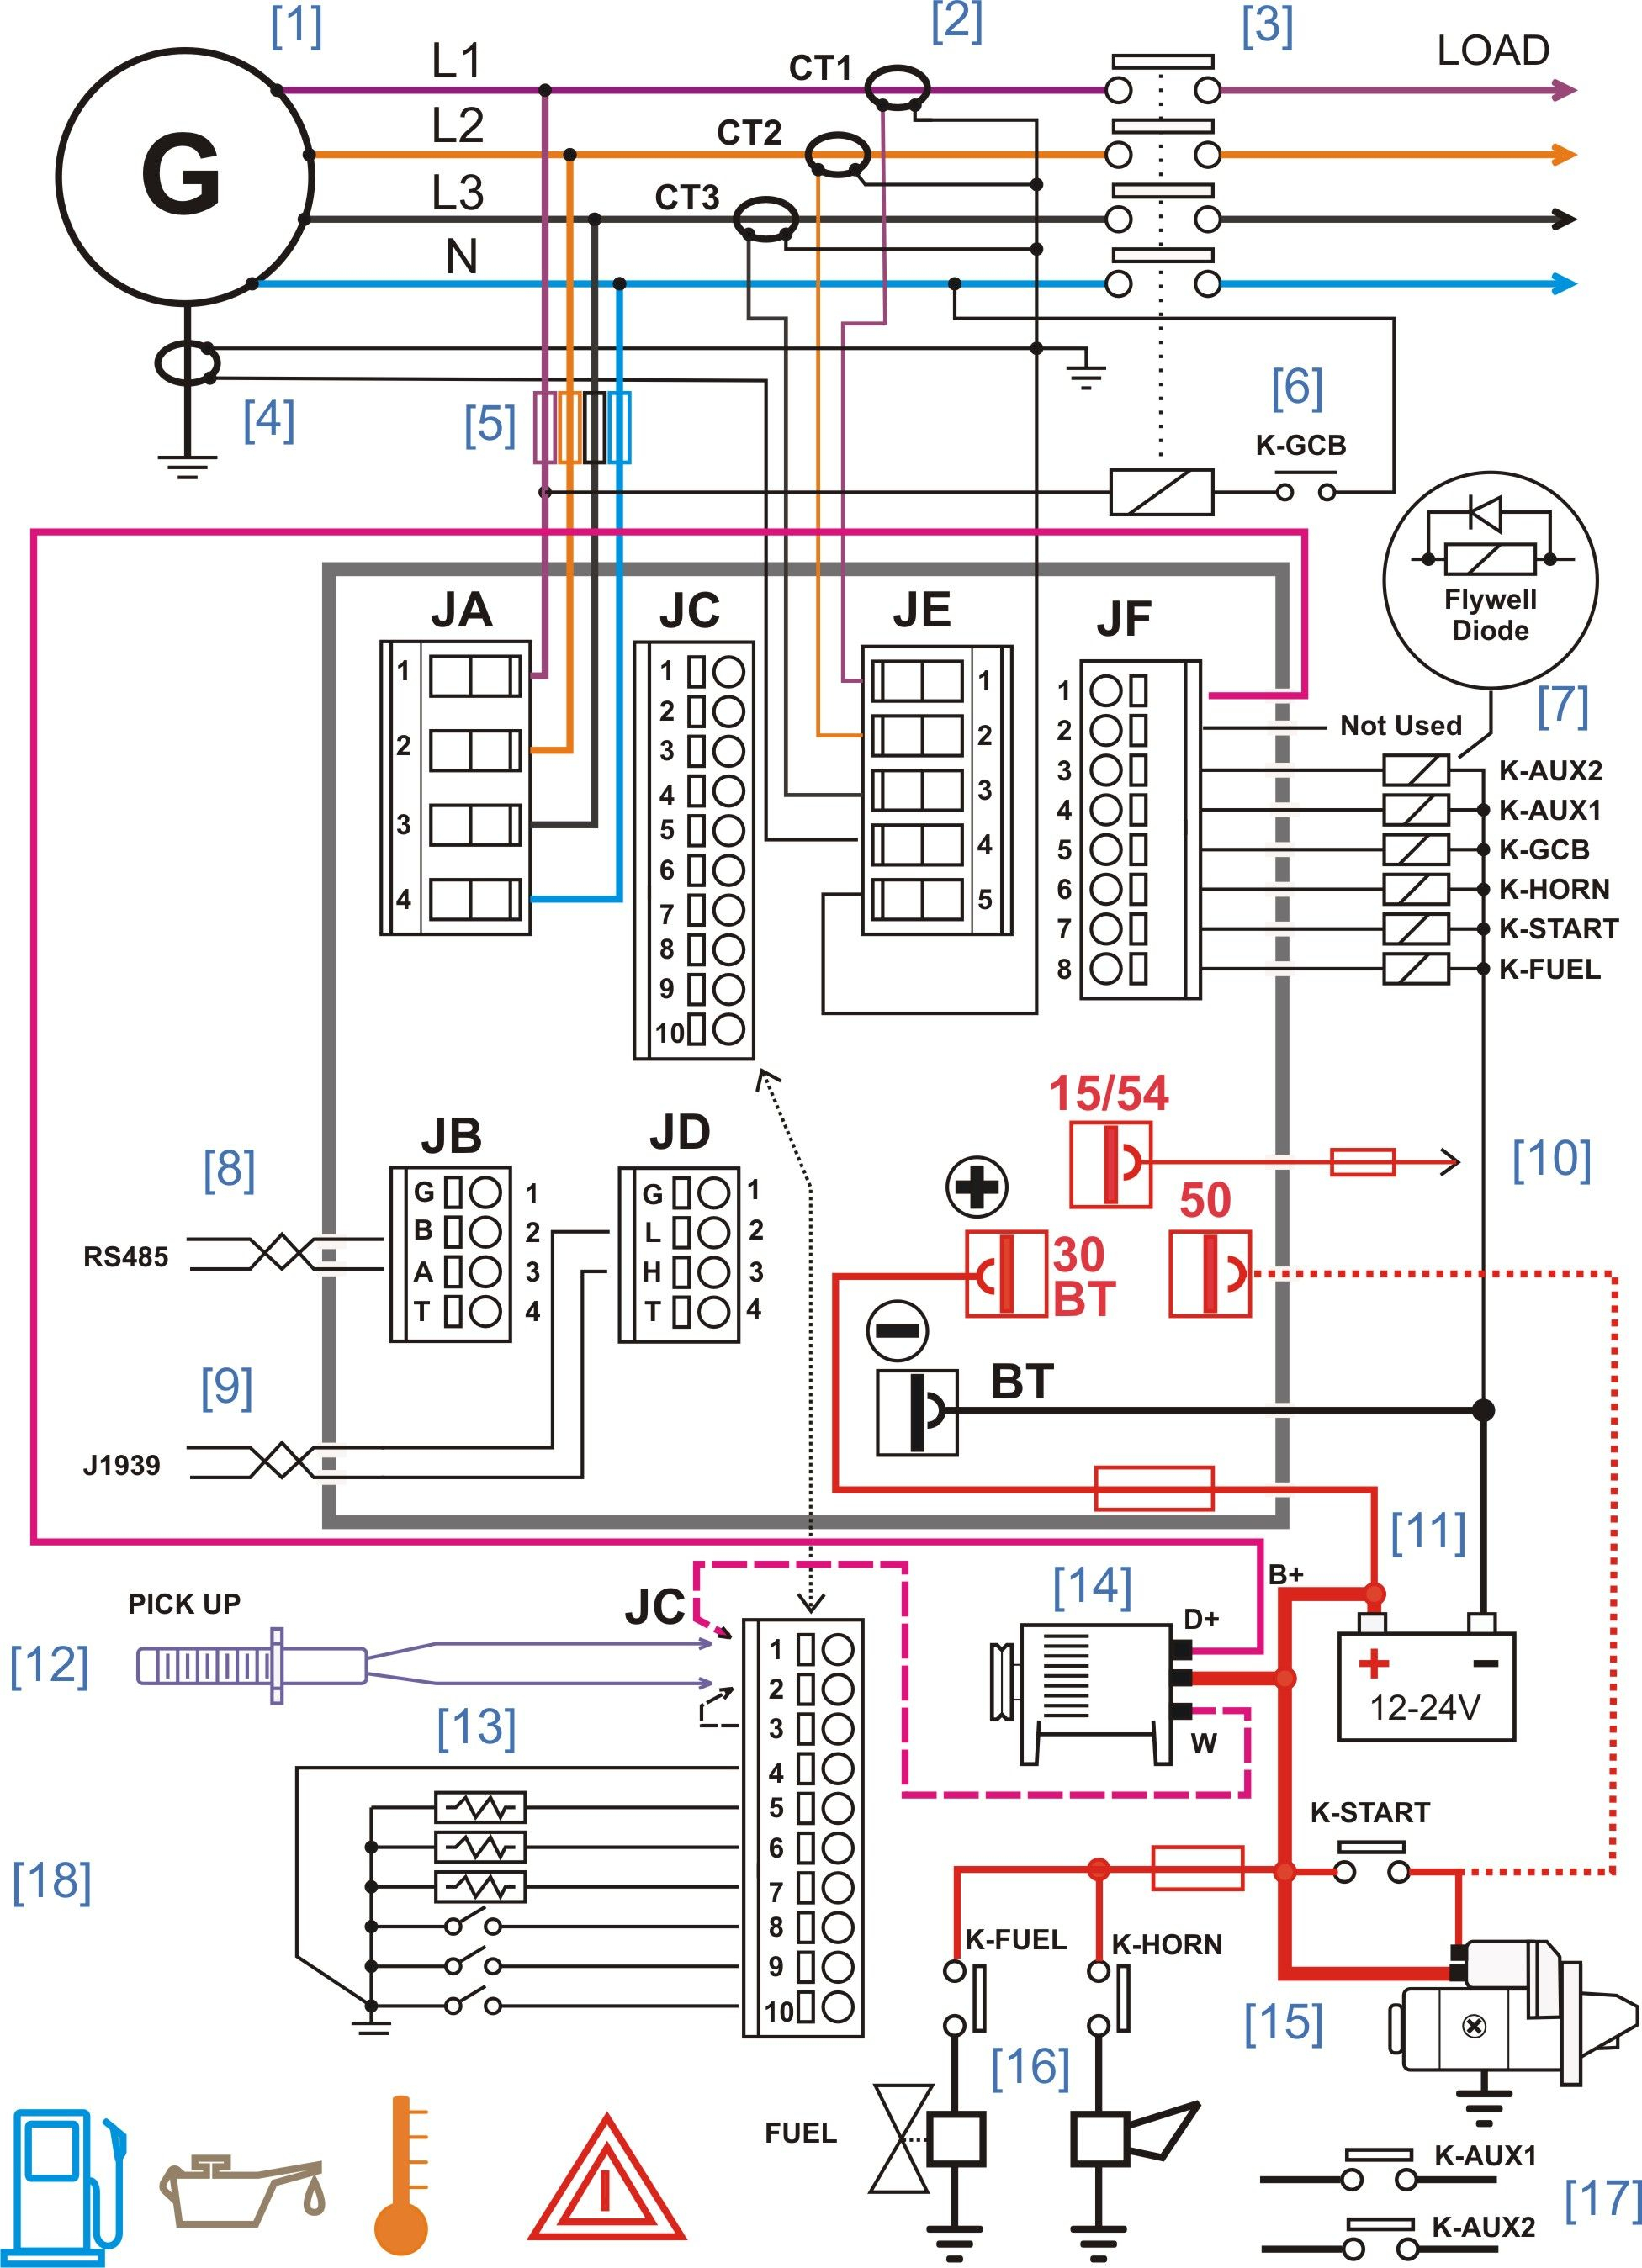 cummins transfer switch wiring diagram Collection-sel generator control panel wiring diagram sel generators rh pinterest 12-m